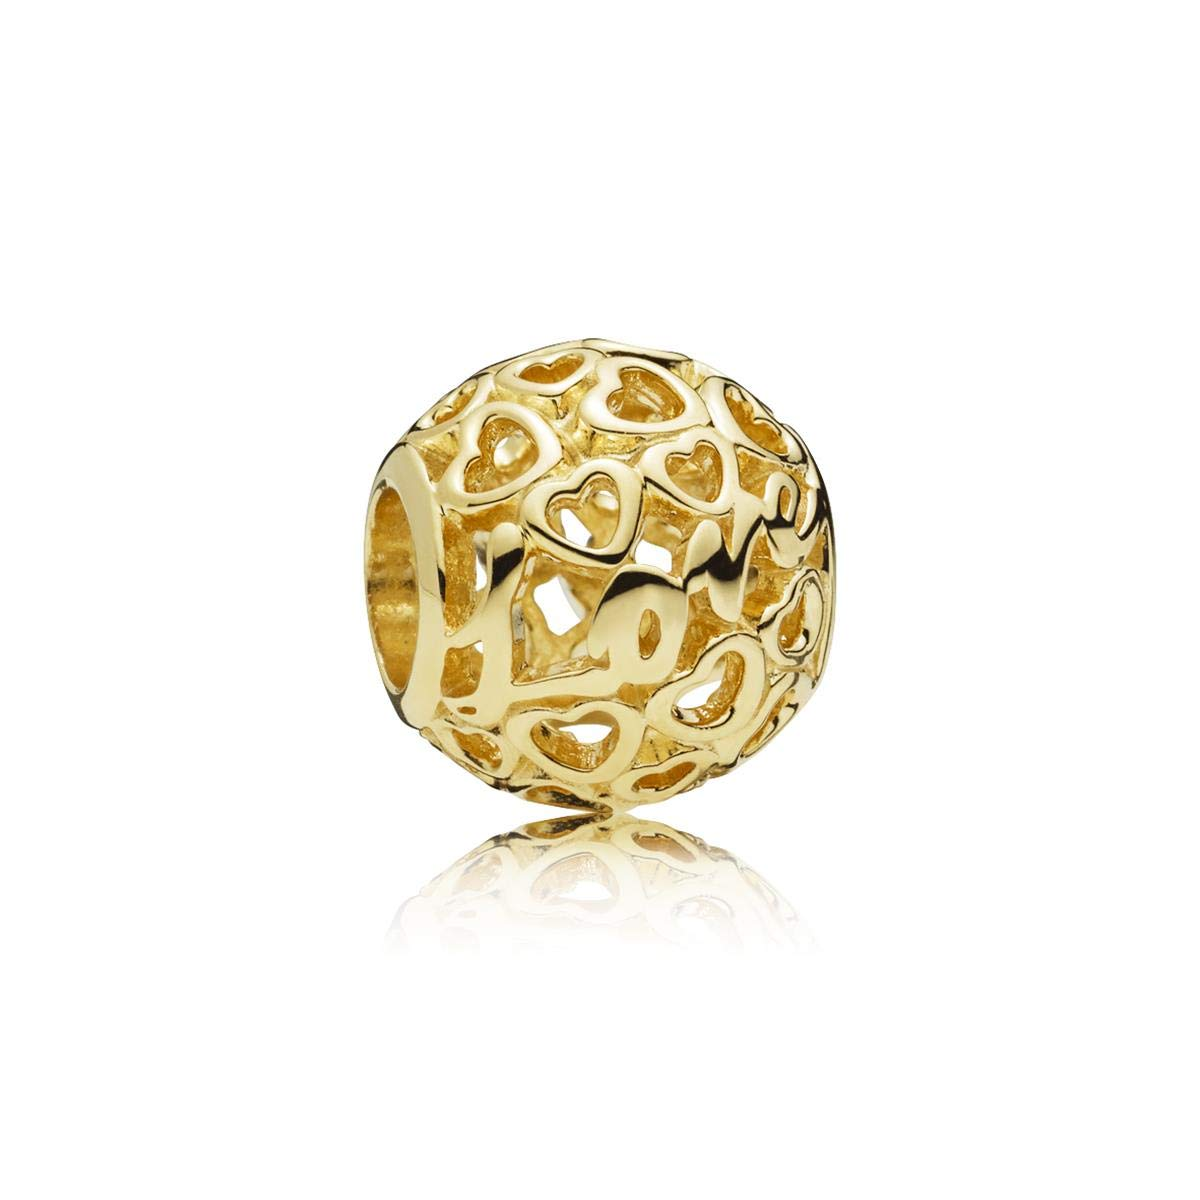 Pandora 14kt Gold Glowing With Love Charm 757539